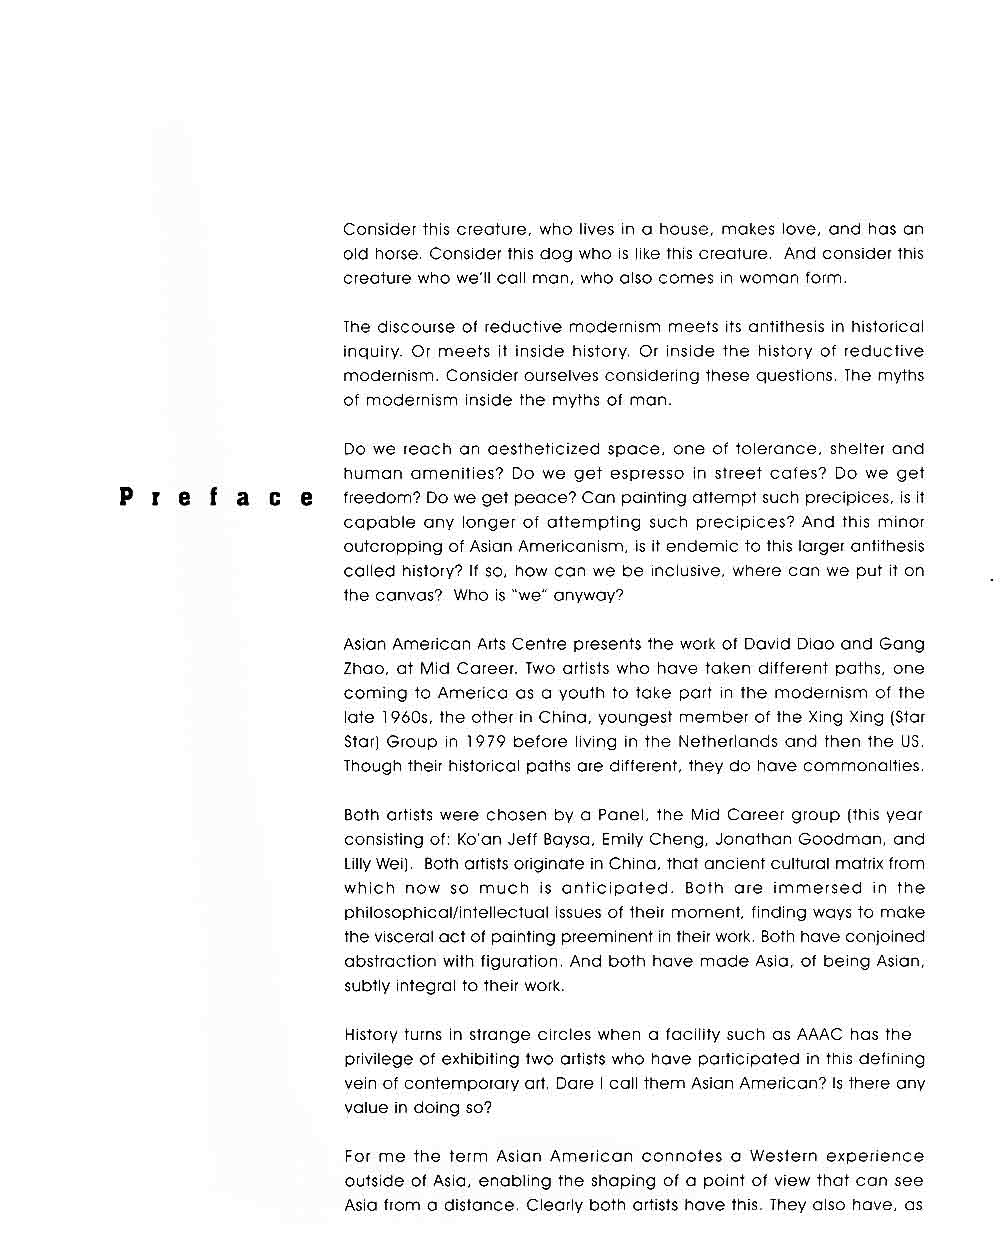 diao david selected document a digital  david diao gang zhao essay pg 1